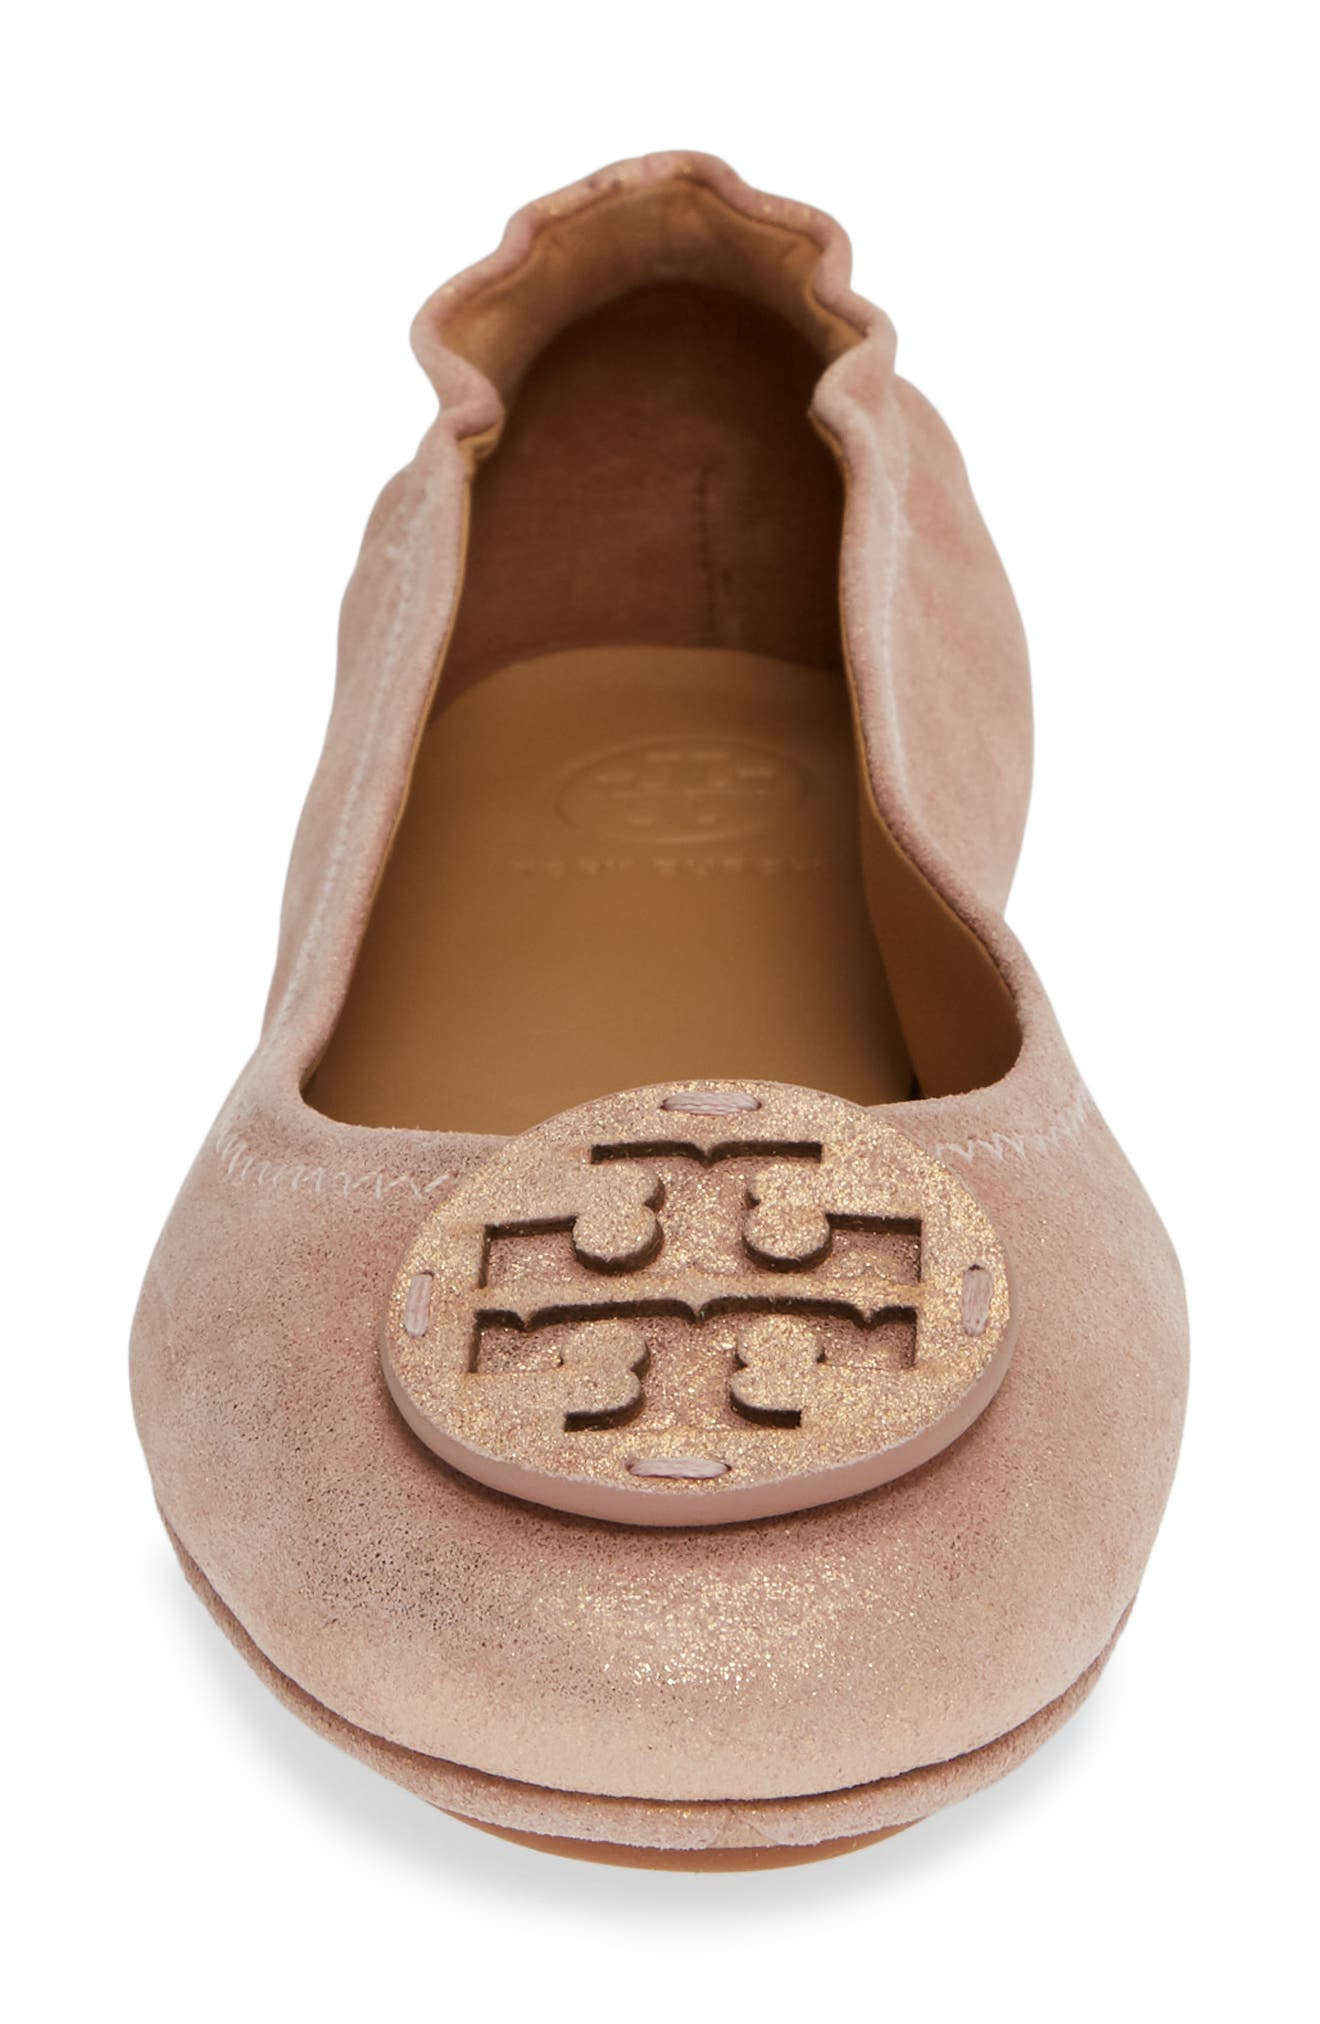 TORY BURCH, Minnie Travel Ballet Flat, Alternate thumbnail 4, color, 654